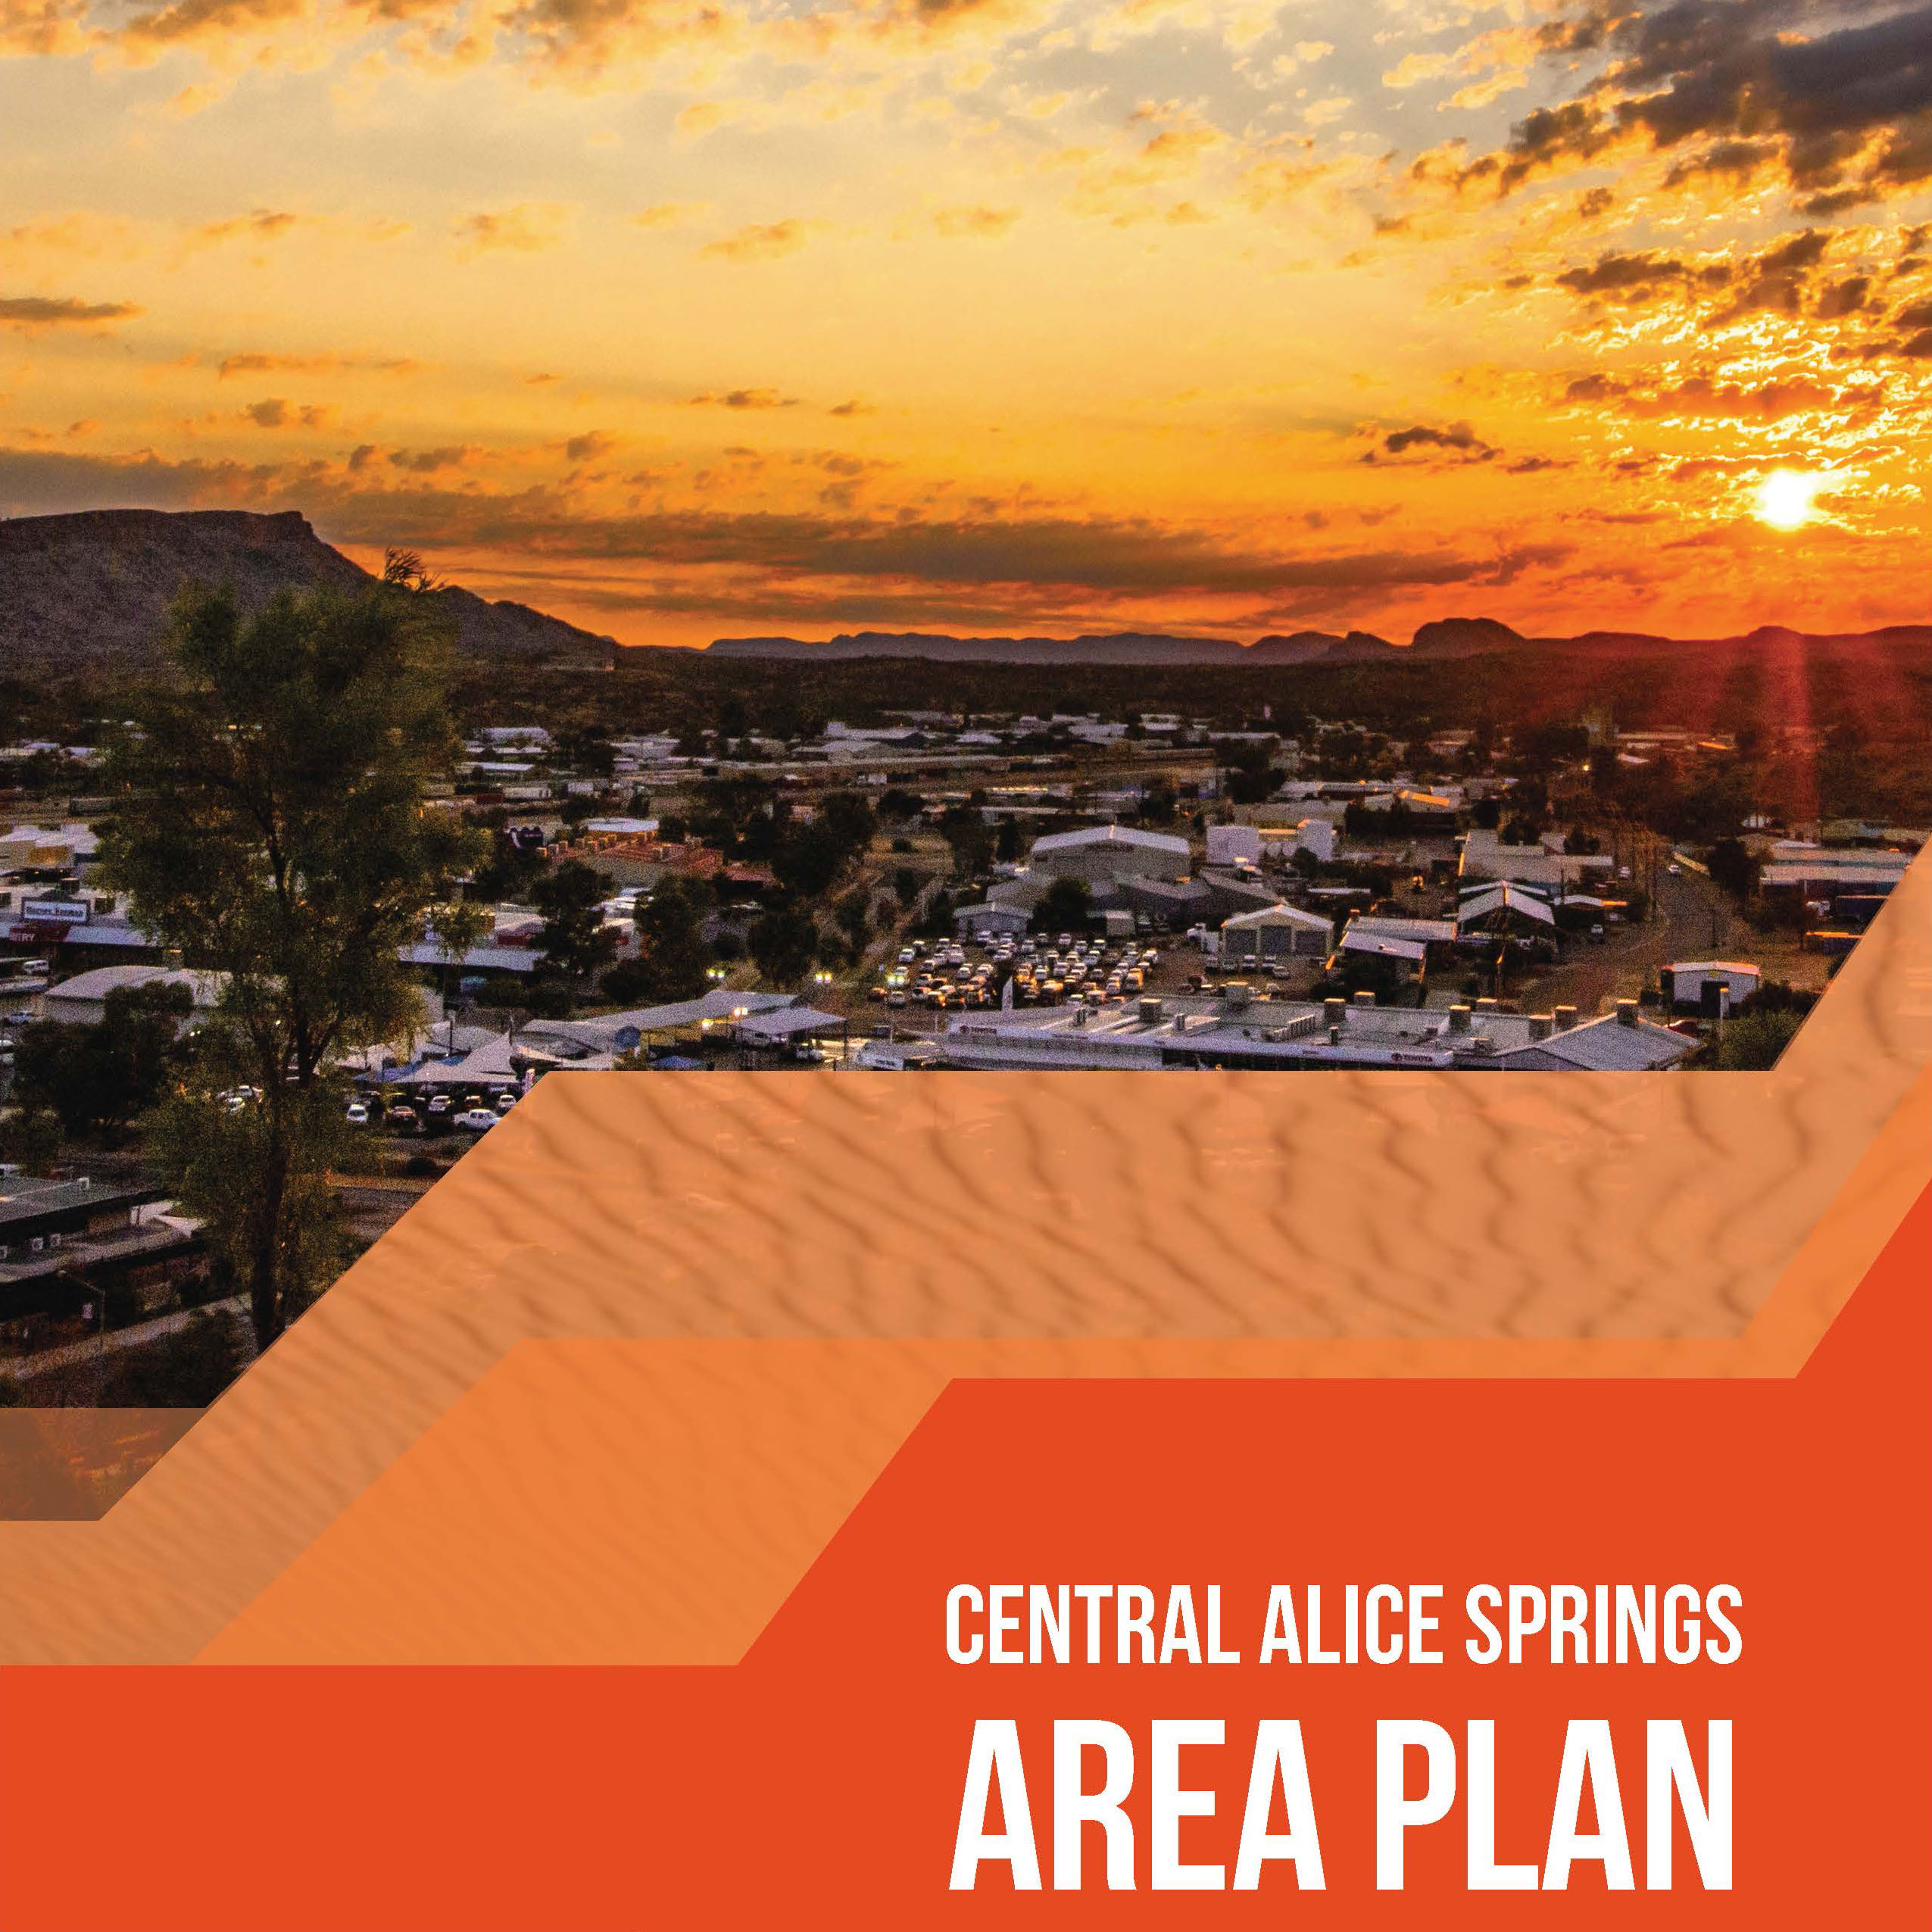 Central Alice Springs Area Plan button